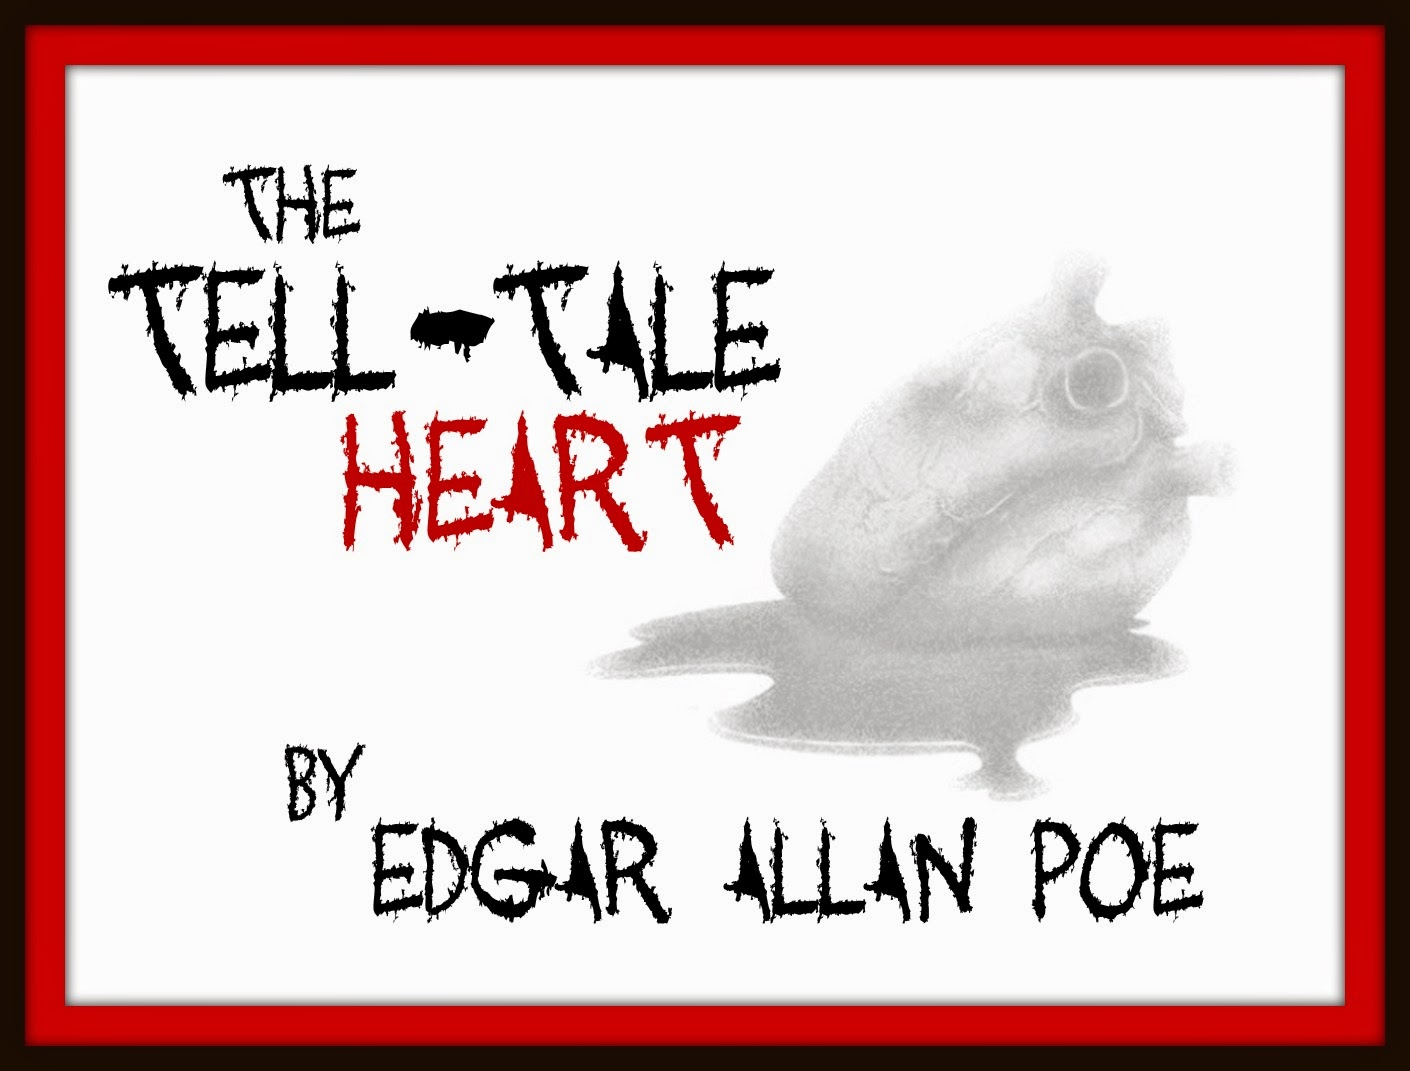 http://www.teacherspayteachers.com/Product/Tell-Tale-Heart-Mood-and-Tone-Edgar-Allan-Poe-HalloweenBash2014-637912